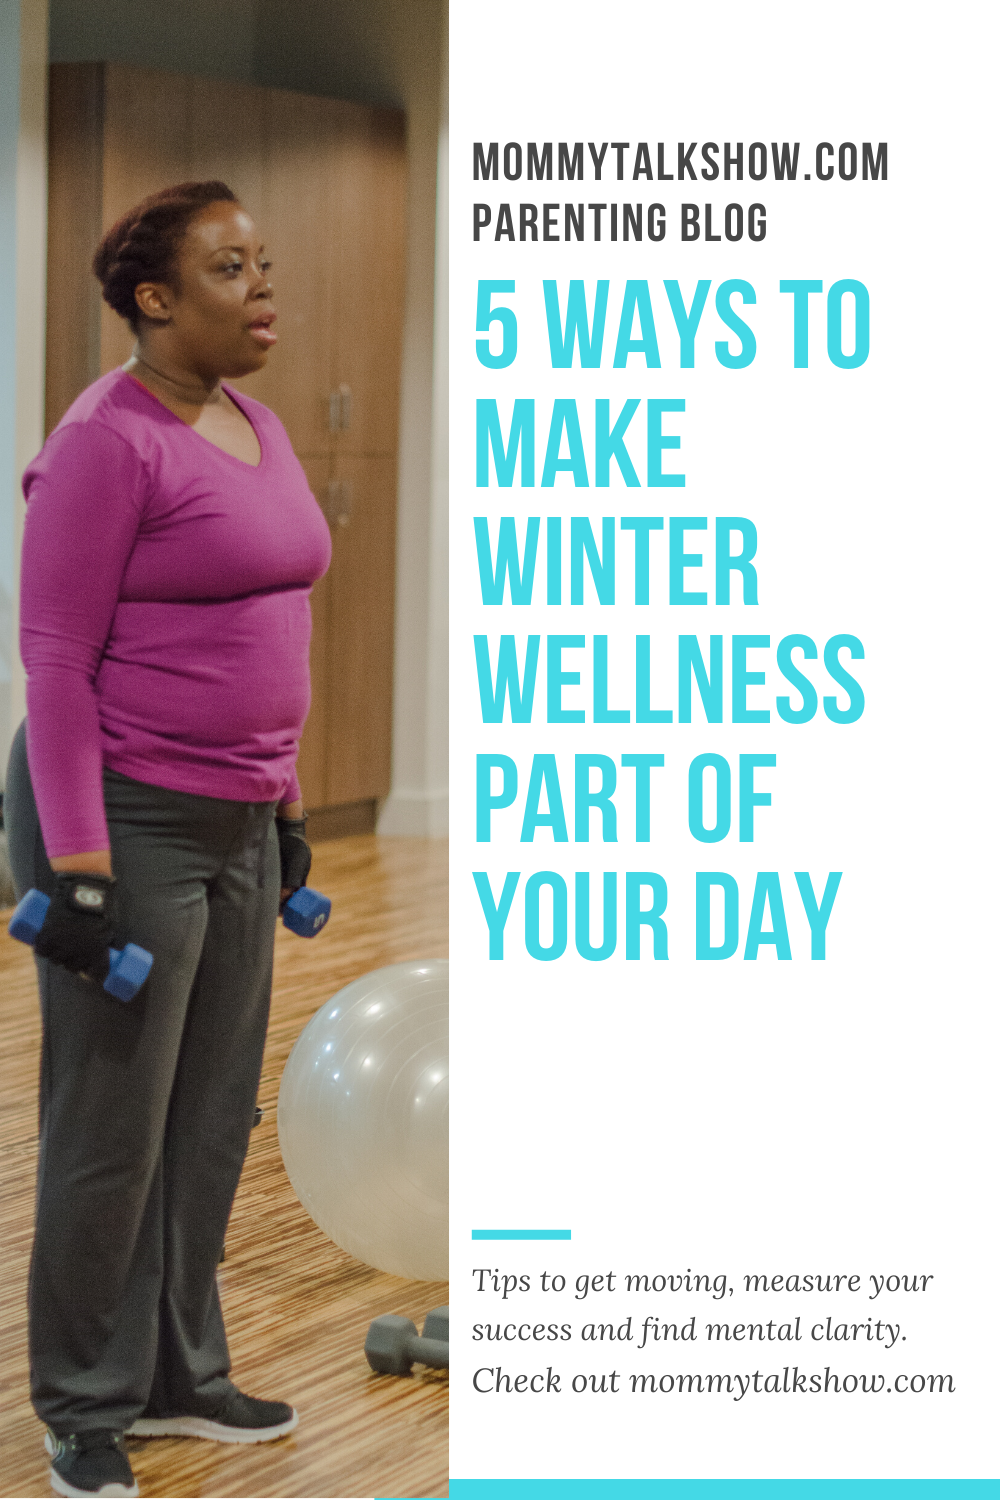 5 Ways to Make Winter Wellness Part of Your Day